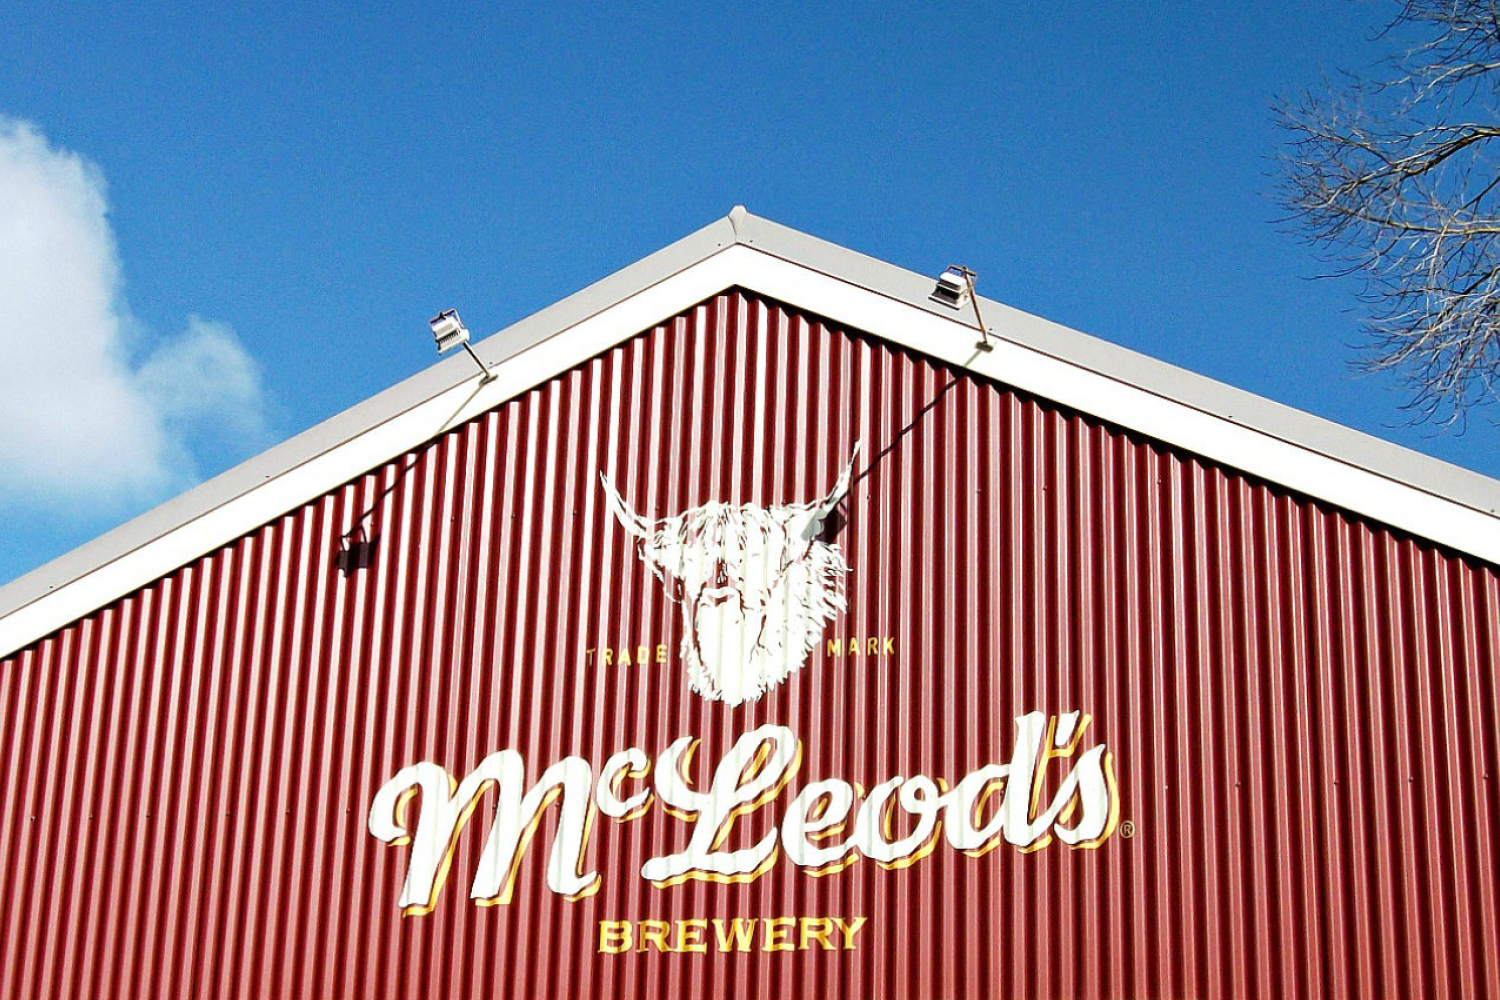 A Visit to McLeod's Brewery